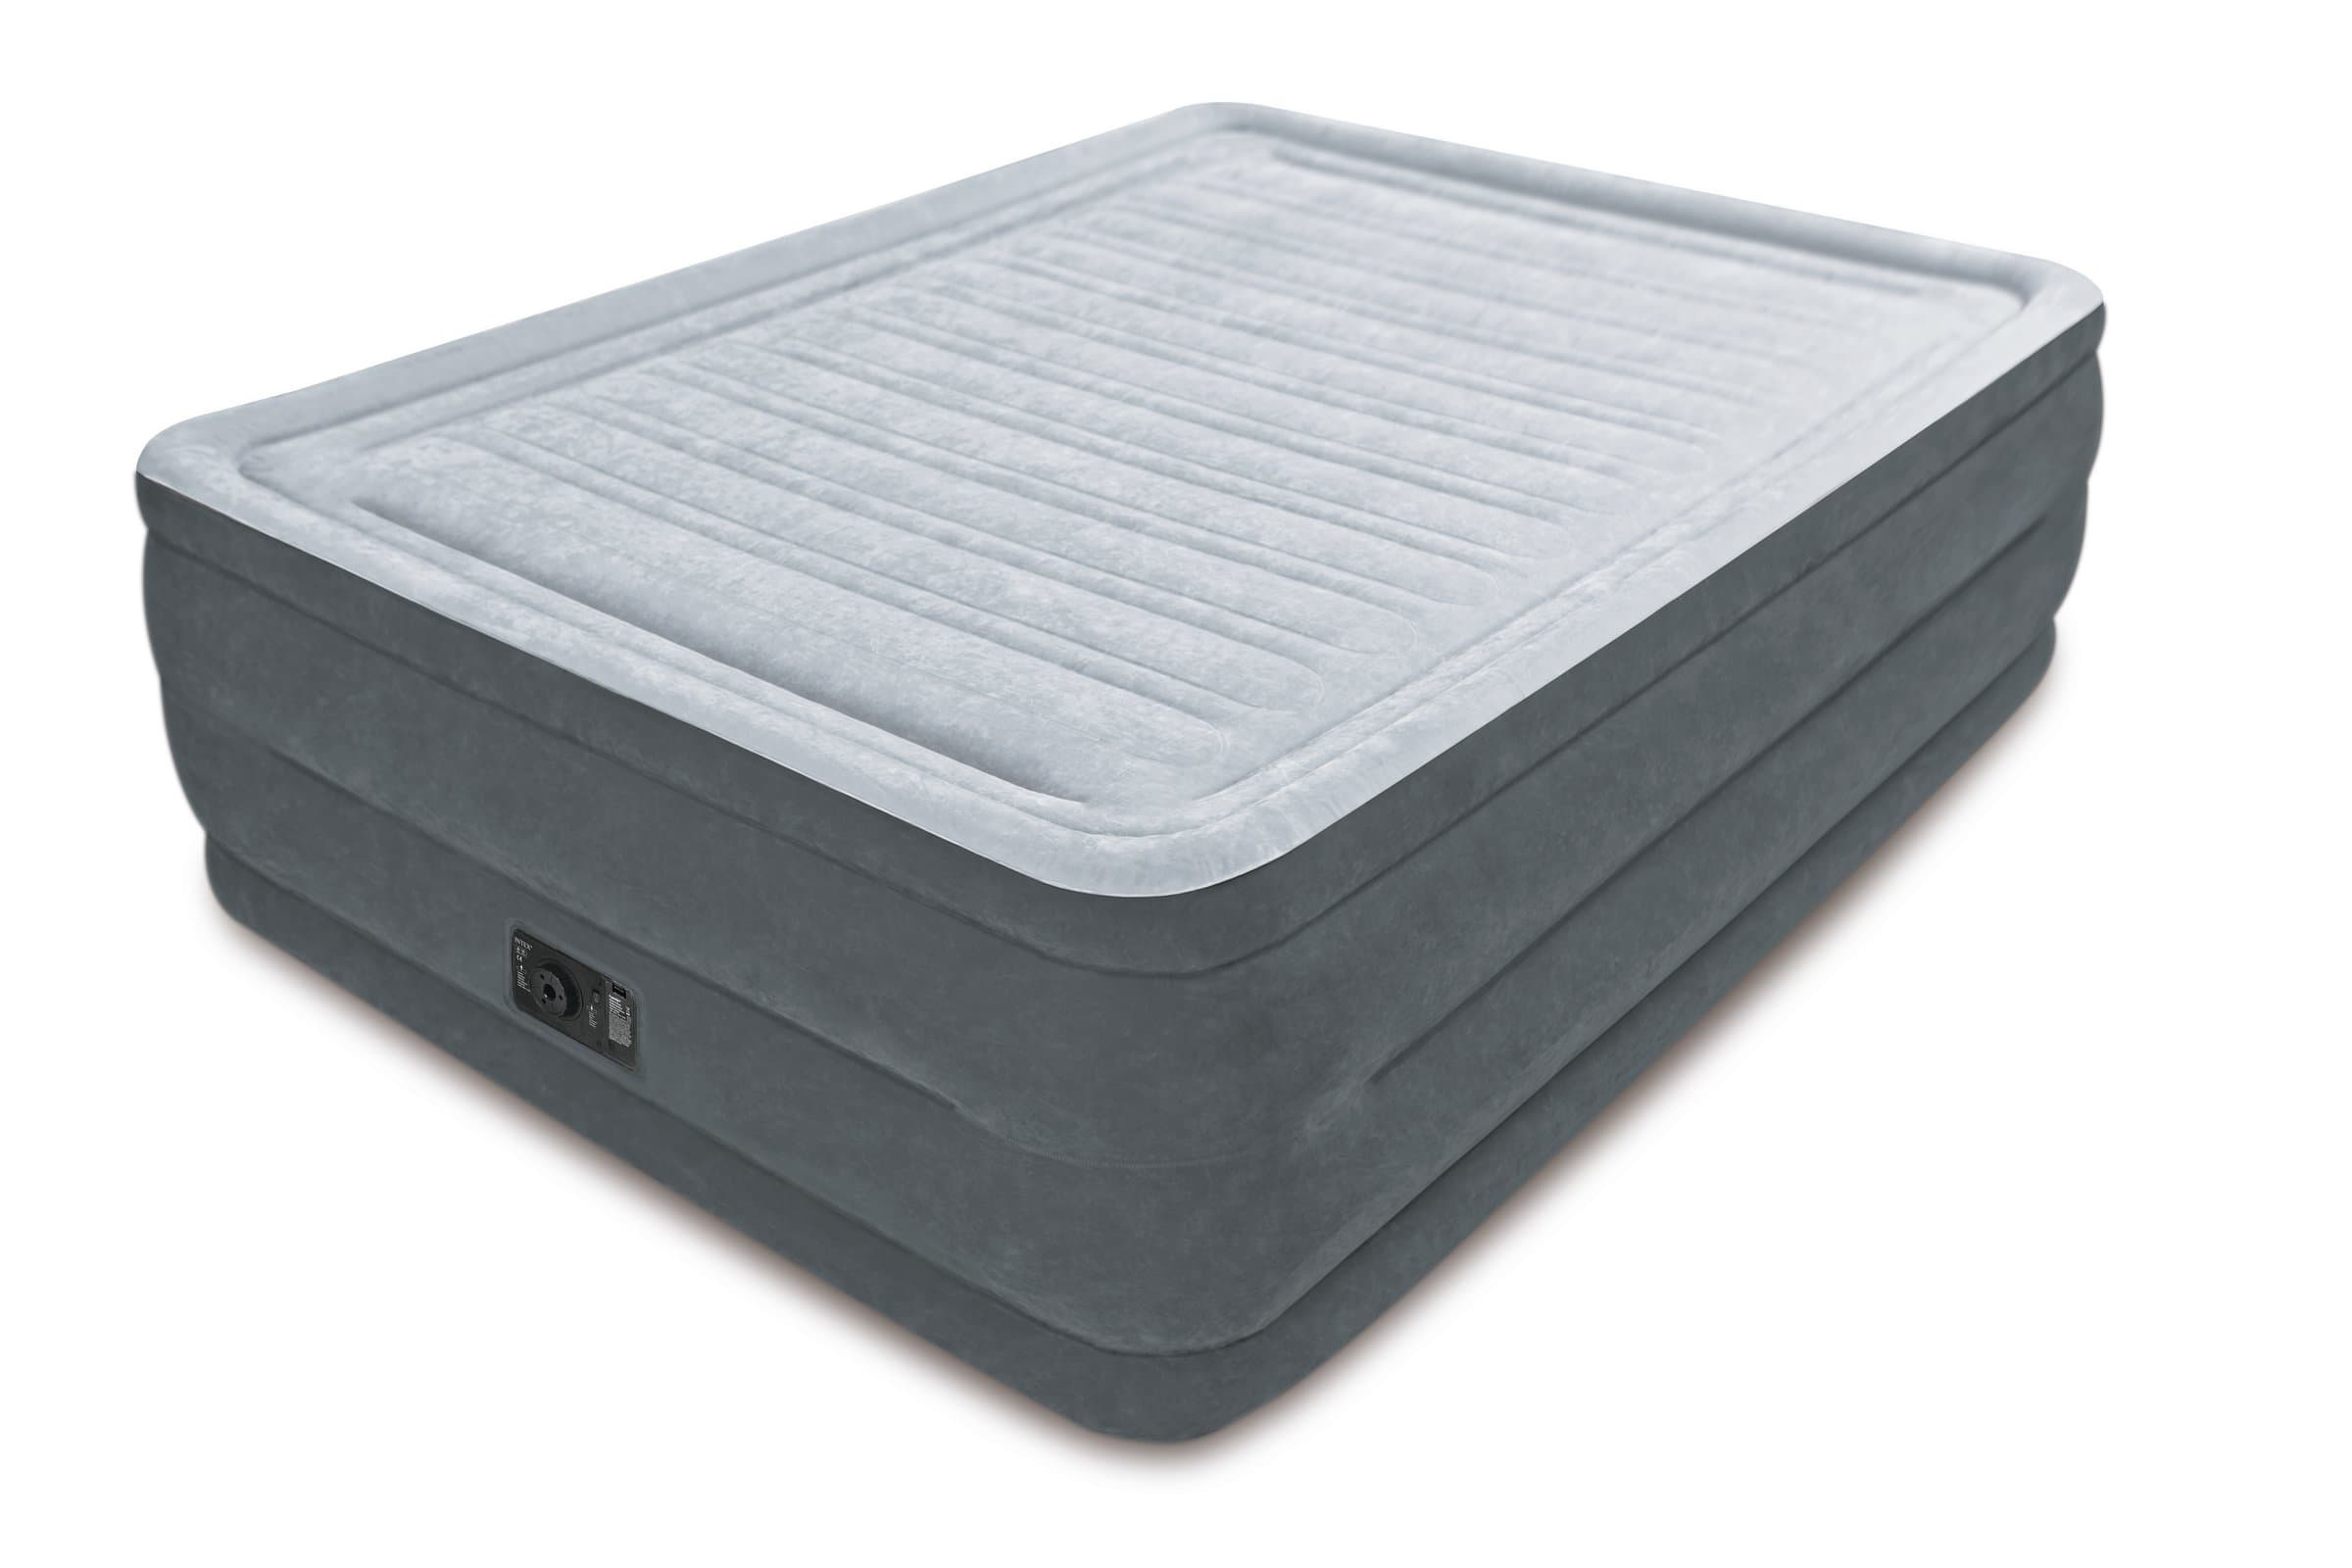 Intex G 228 Stebett Migros